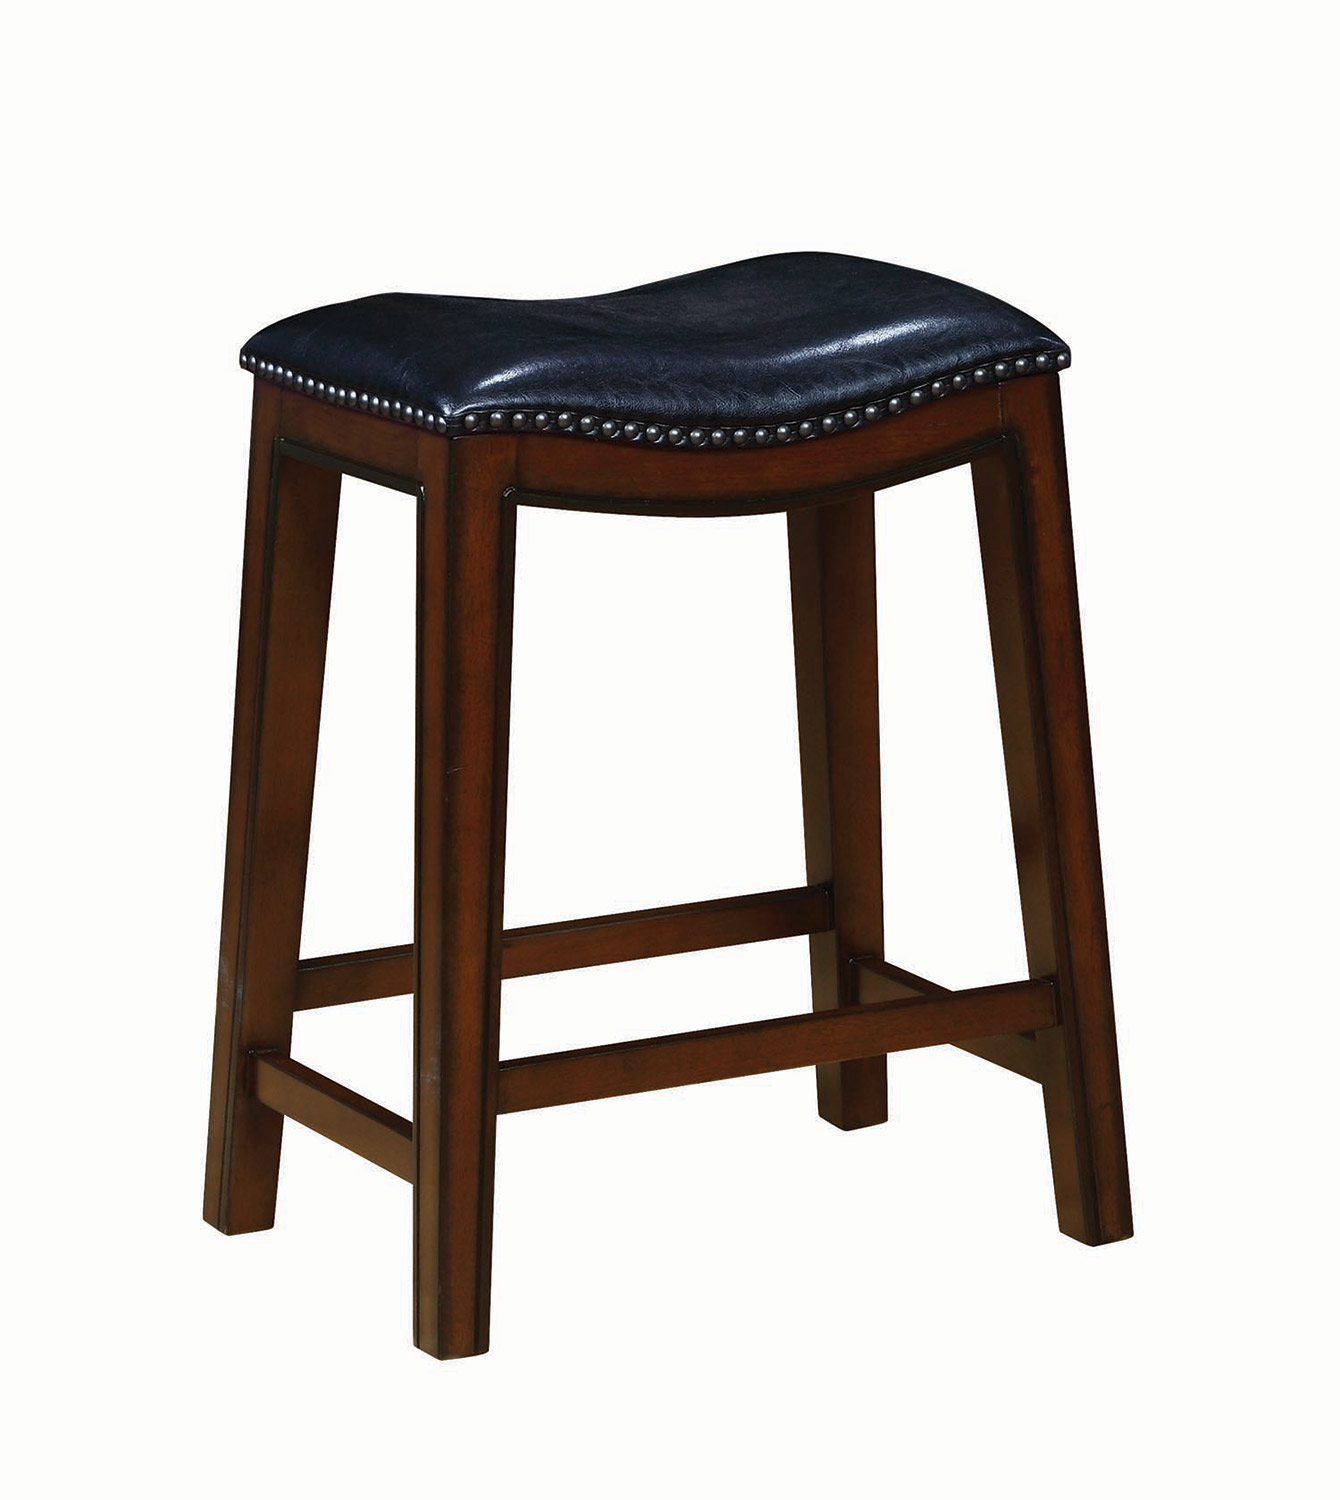 Coaster 122261 Counter Height Stool - Burnished Cappuccino